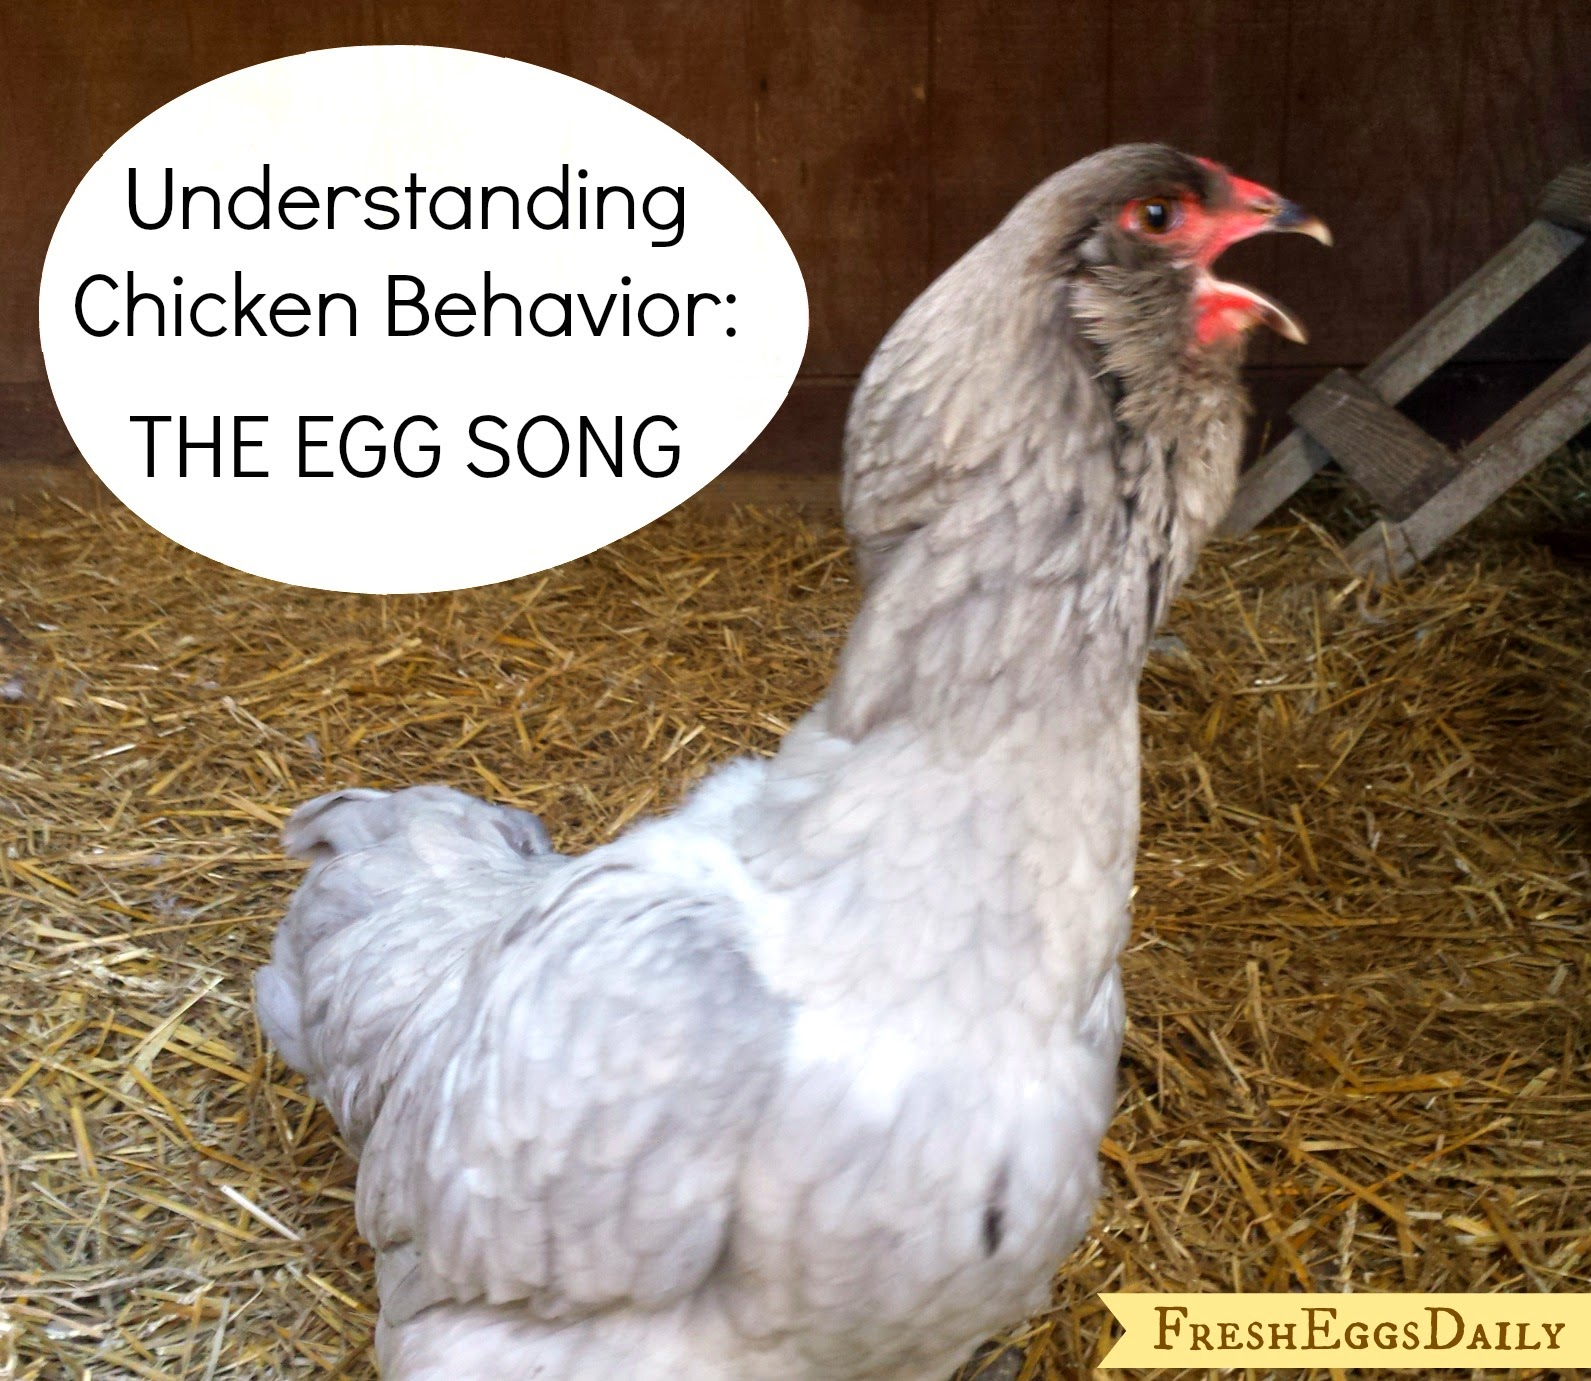 understanding chicken behavior interpreting the egg song fresh eggs daily. Black Bedroom Furniture Sets. Home Design Ideas